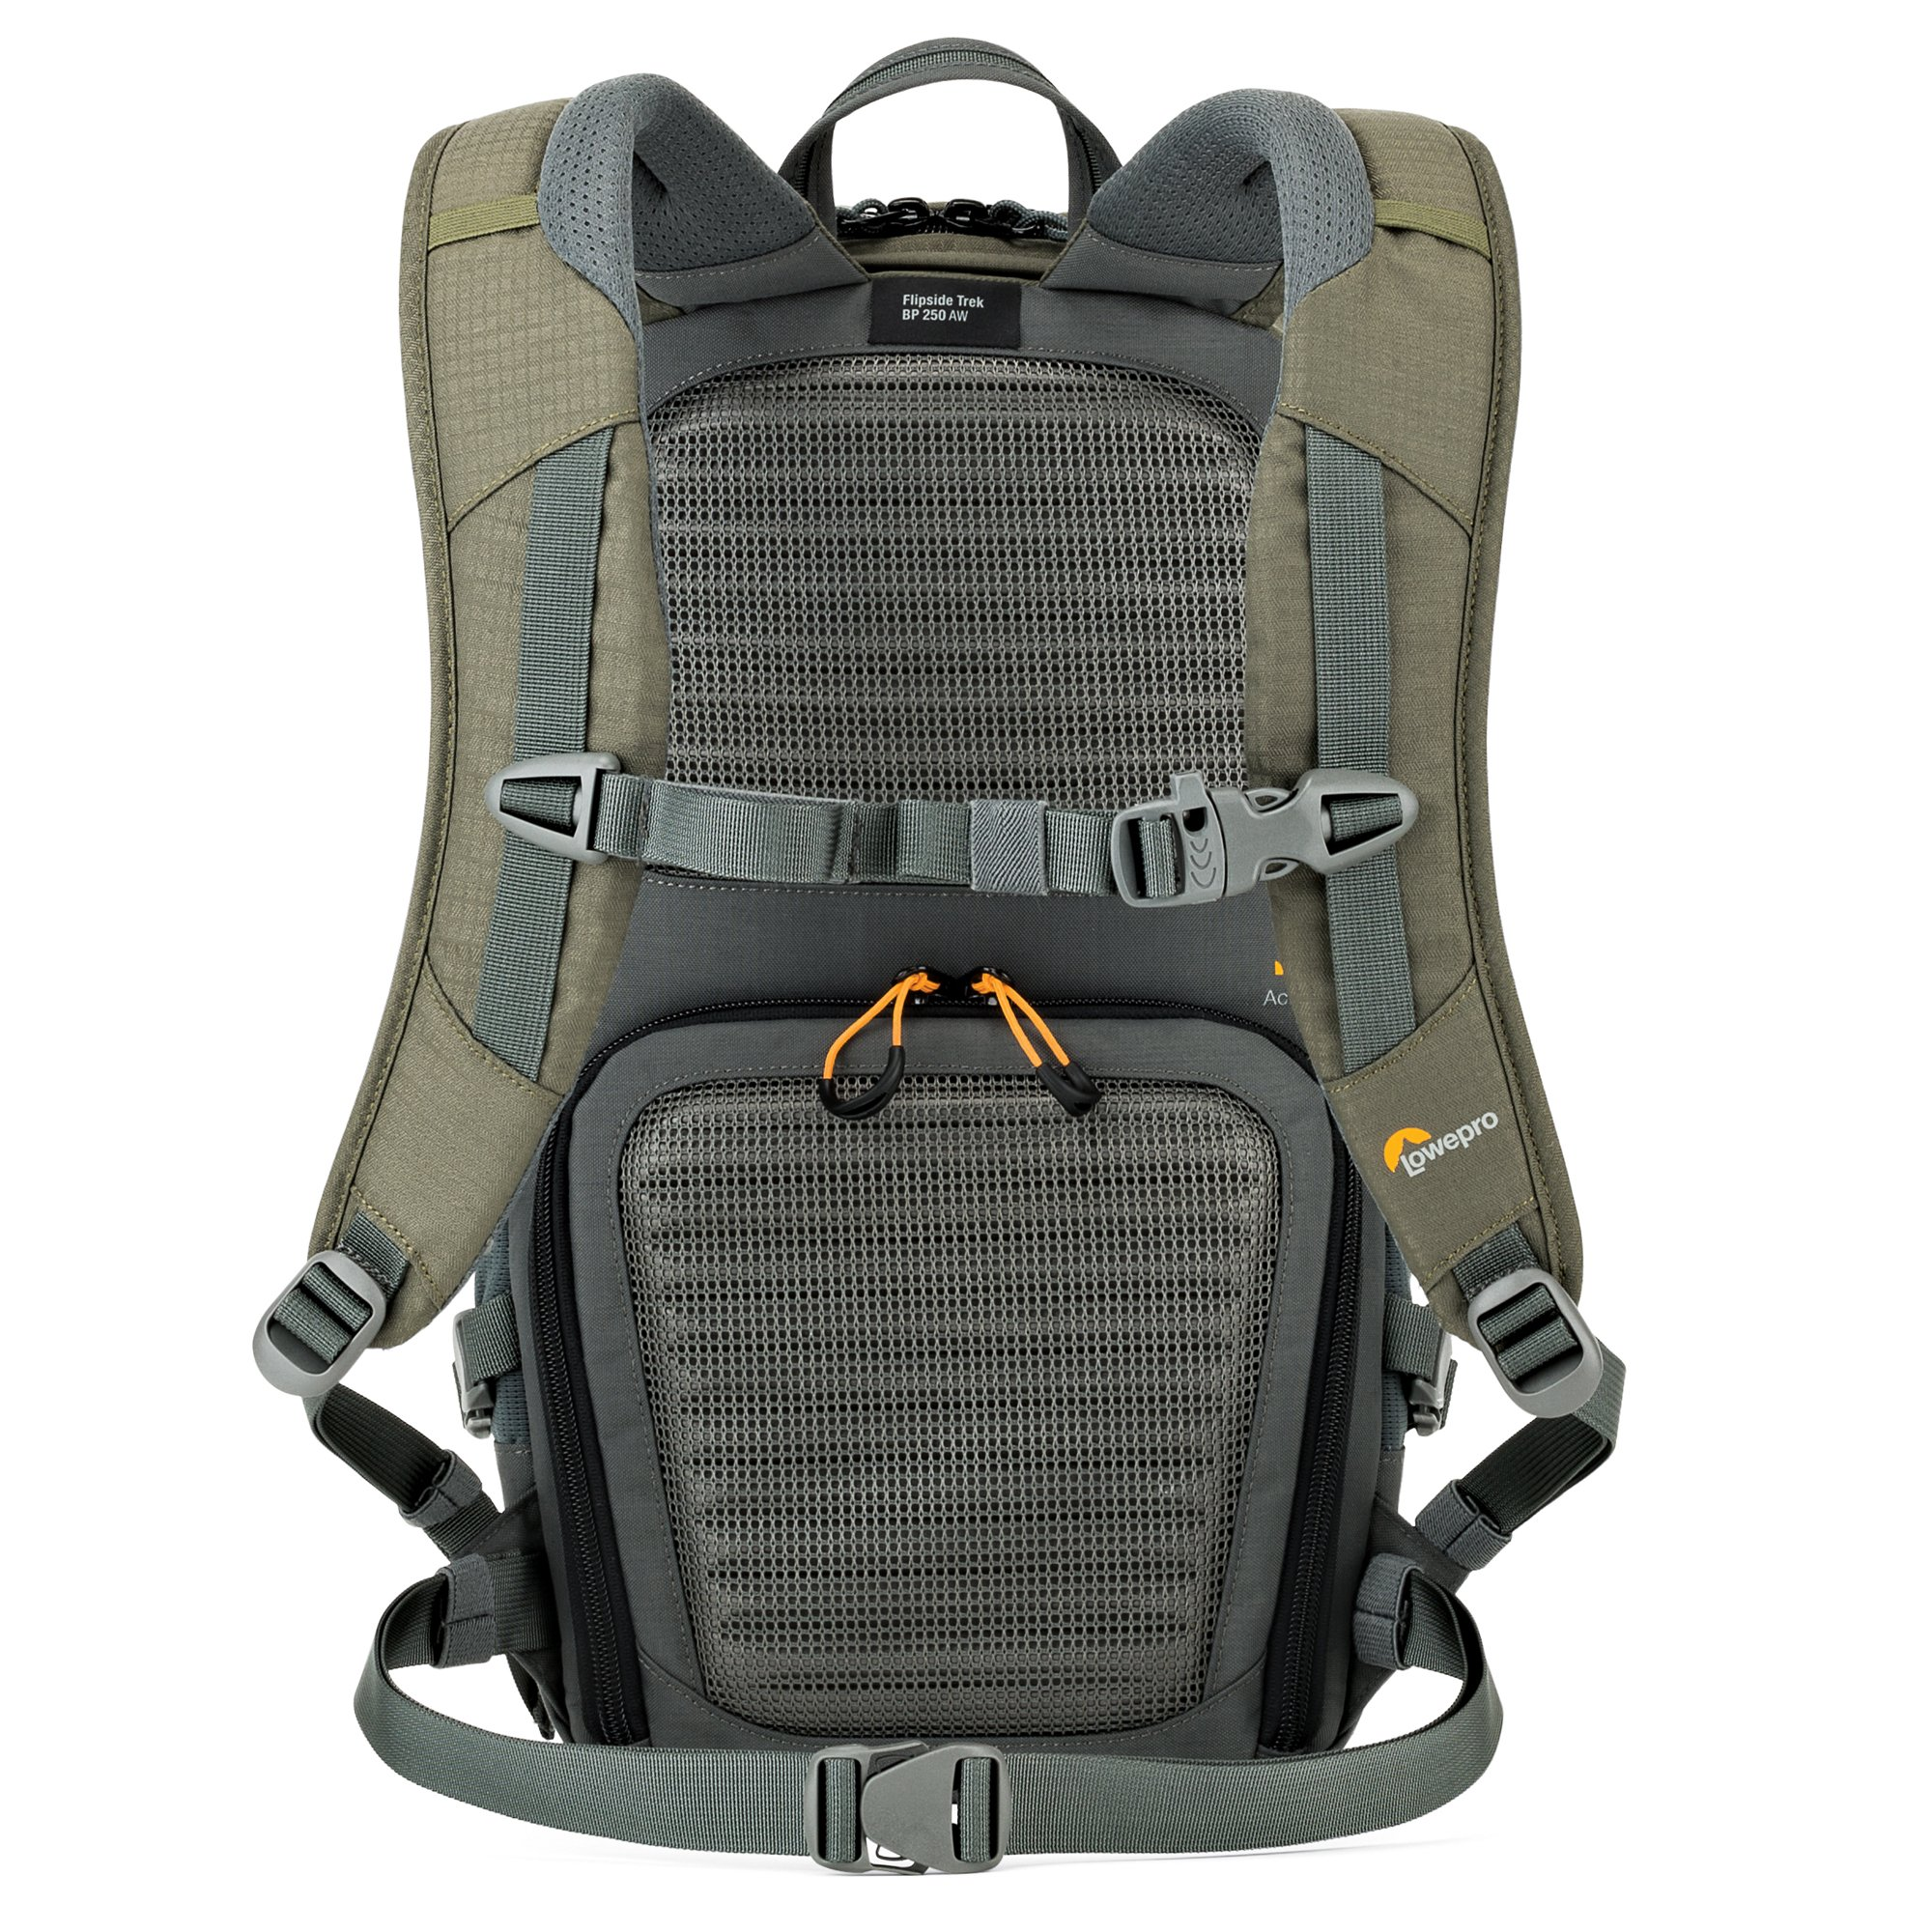 Lowepro Flipside Trek BP 250 AW - Outdoor Camera Backpack for Mirrorless or Compact DSLR w/ Rain Cover and Tablet Pocket. by Lowepro (Image #9)